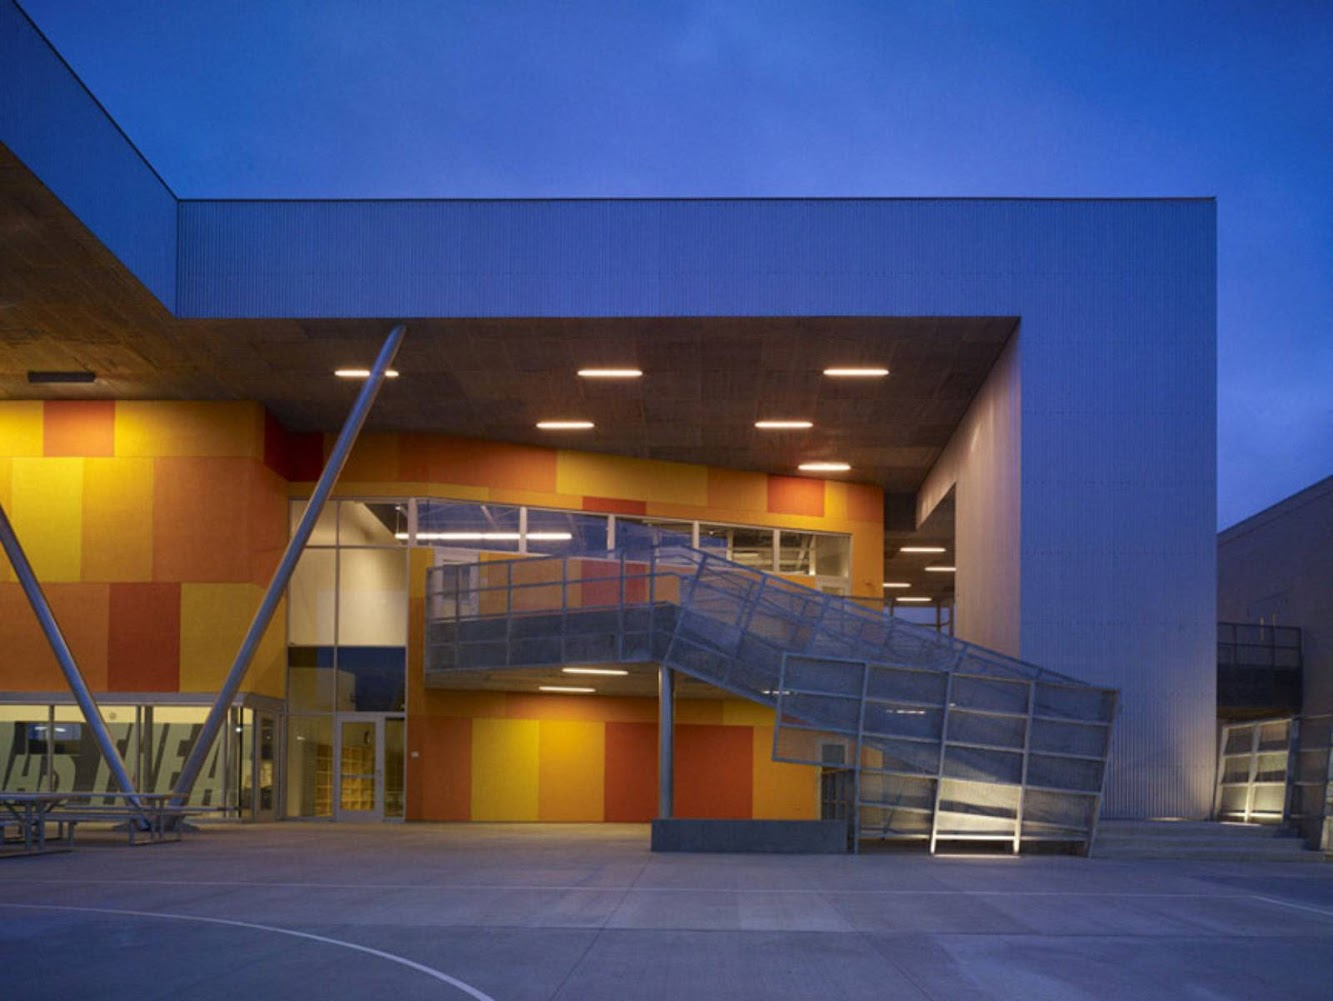 Los Angeles, California, Stati Uniti: ST. Thomas the Apostle School by Griffin Enright Architects